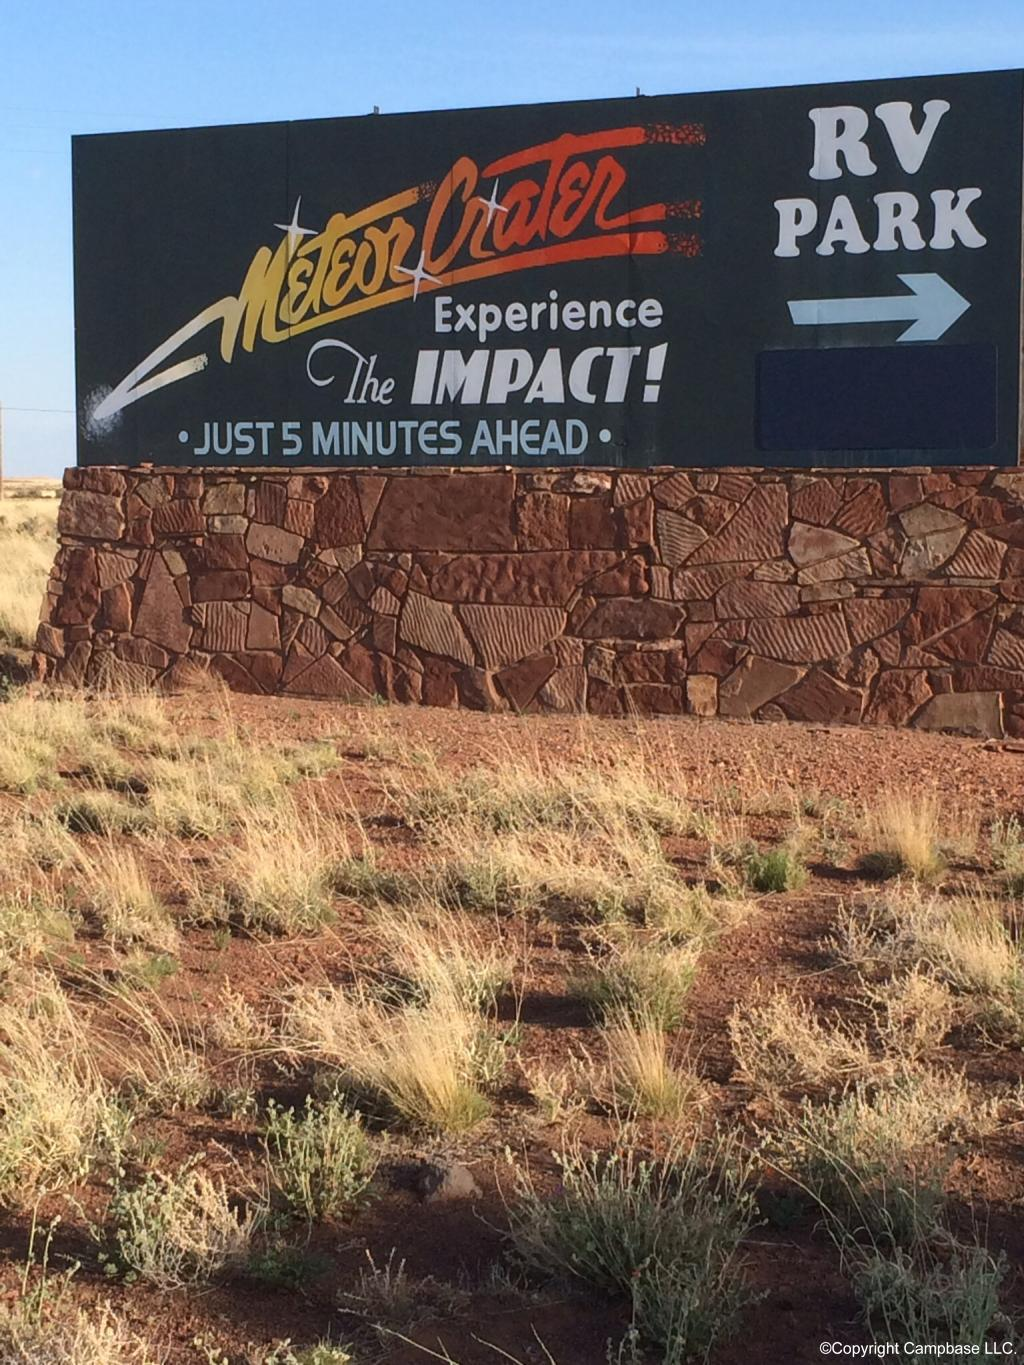 Meteor Crater Rv Park Winslow Arizona